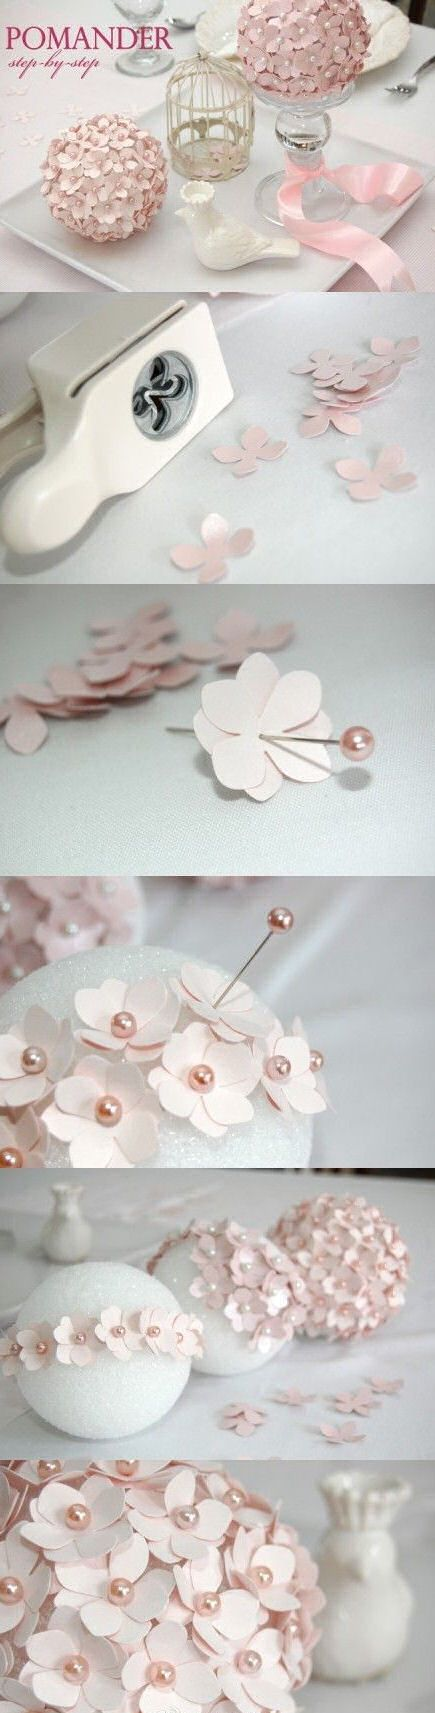 DIY pomander diy crafts craft ideas easy crafts diy ideas diy crafts easy diy home crafts diy decorations